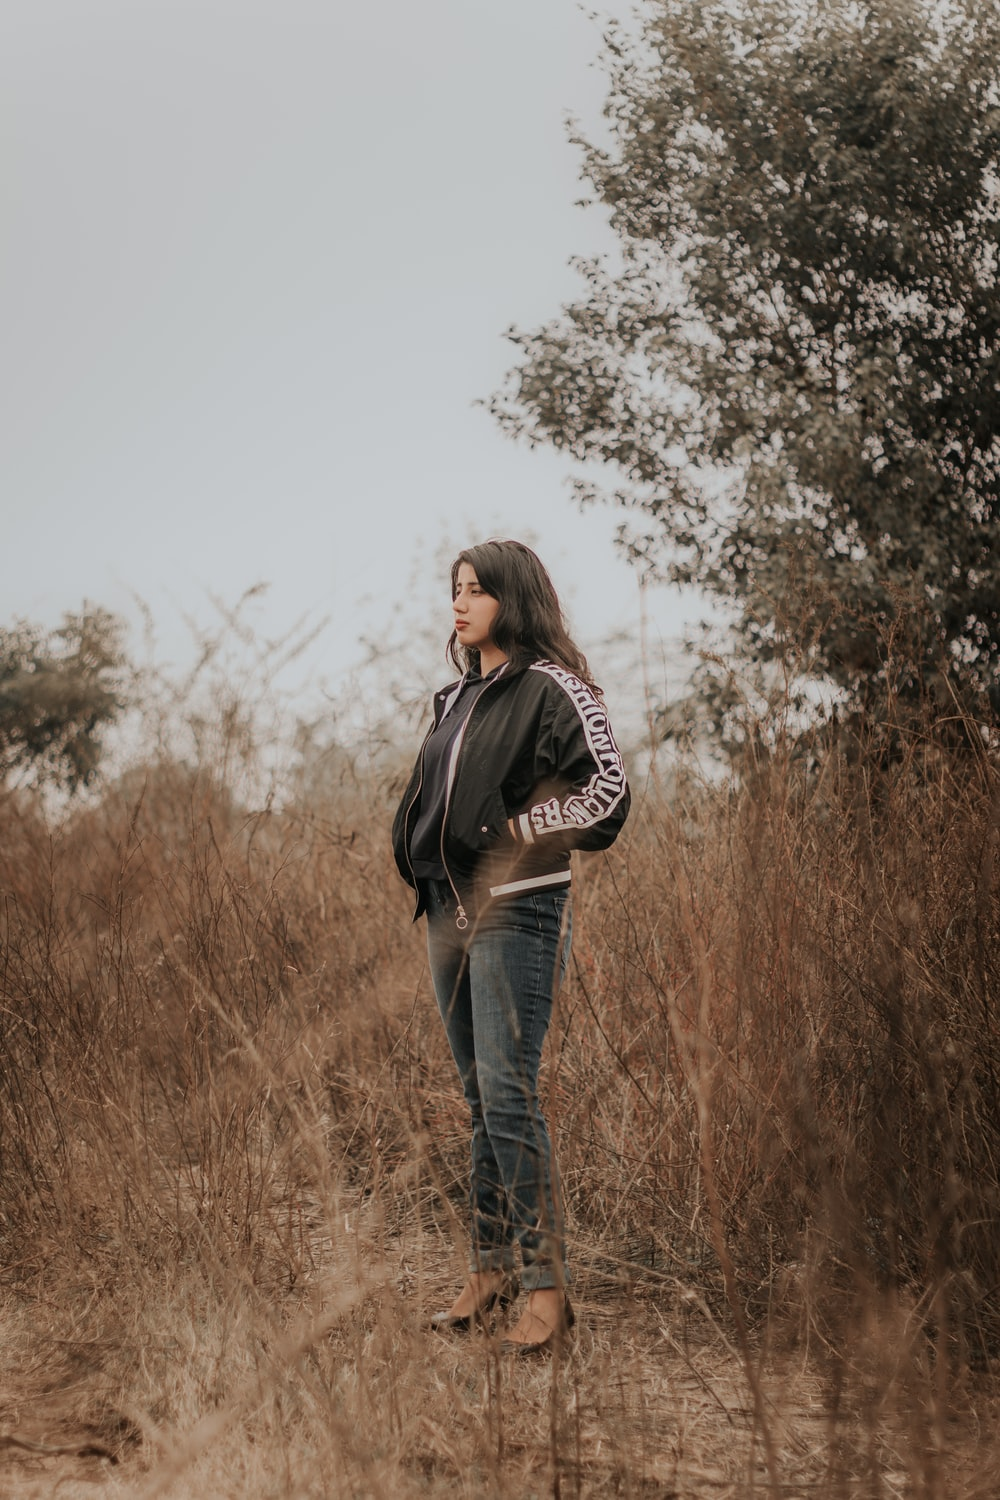 woman in black jacket and blue denim jeans standing on brown grass field during daytime